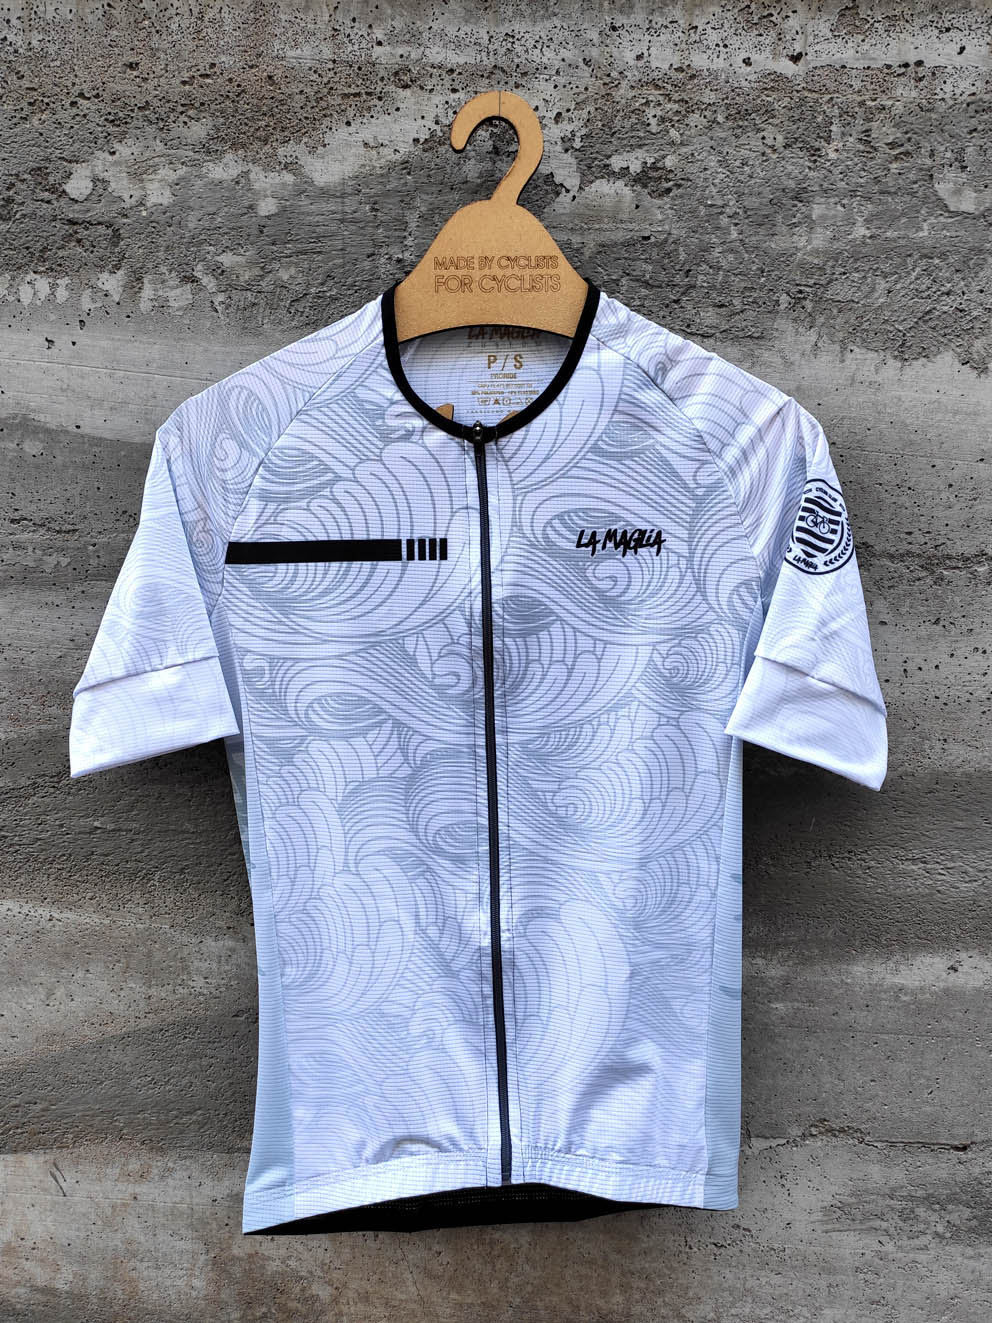 JERSEY PRORIDE MAR CHINES BRANCO